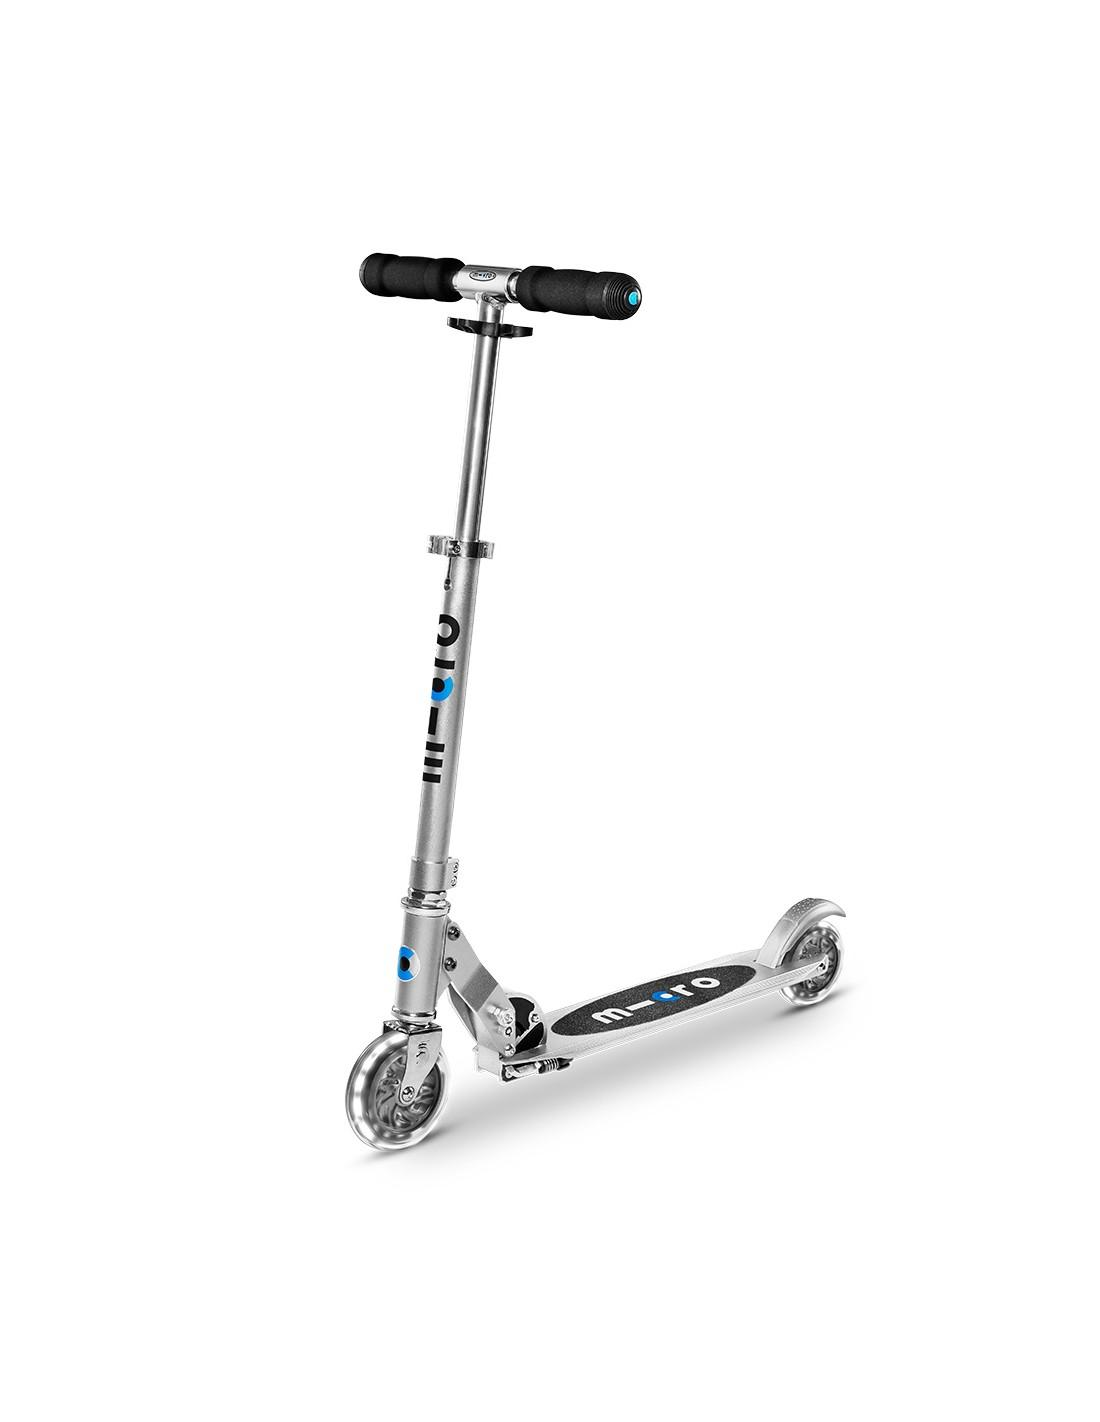 Micro Scooter Sprite Silber LED Scooterreifen - PU Reifen, Scooterart - Scooter, Scooterfarbe - Silber,